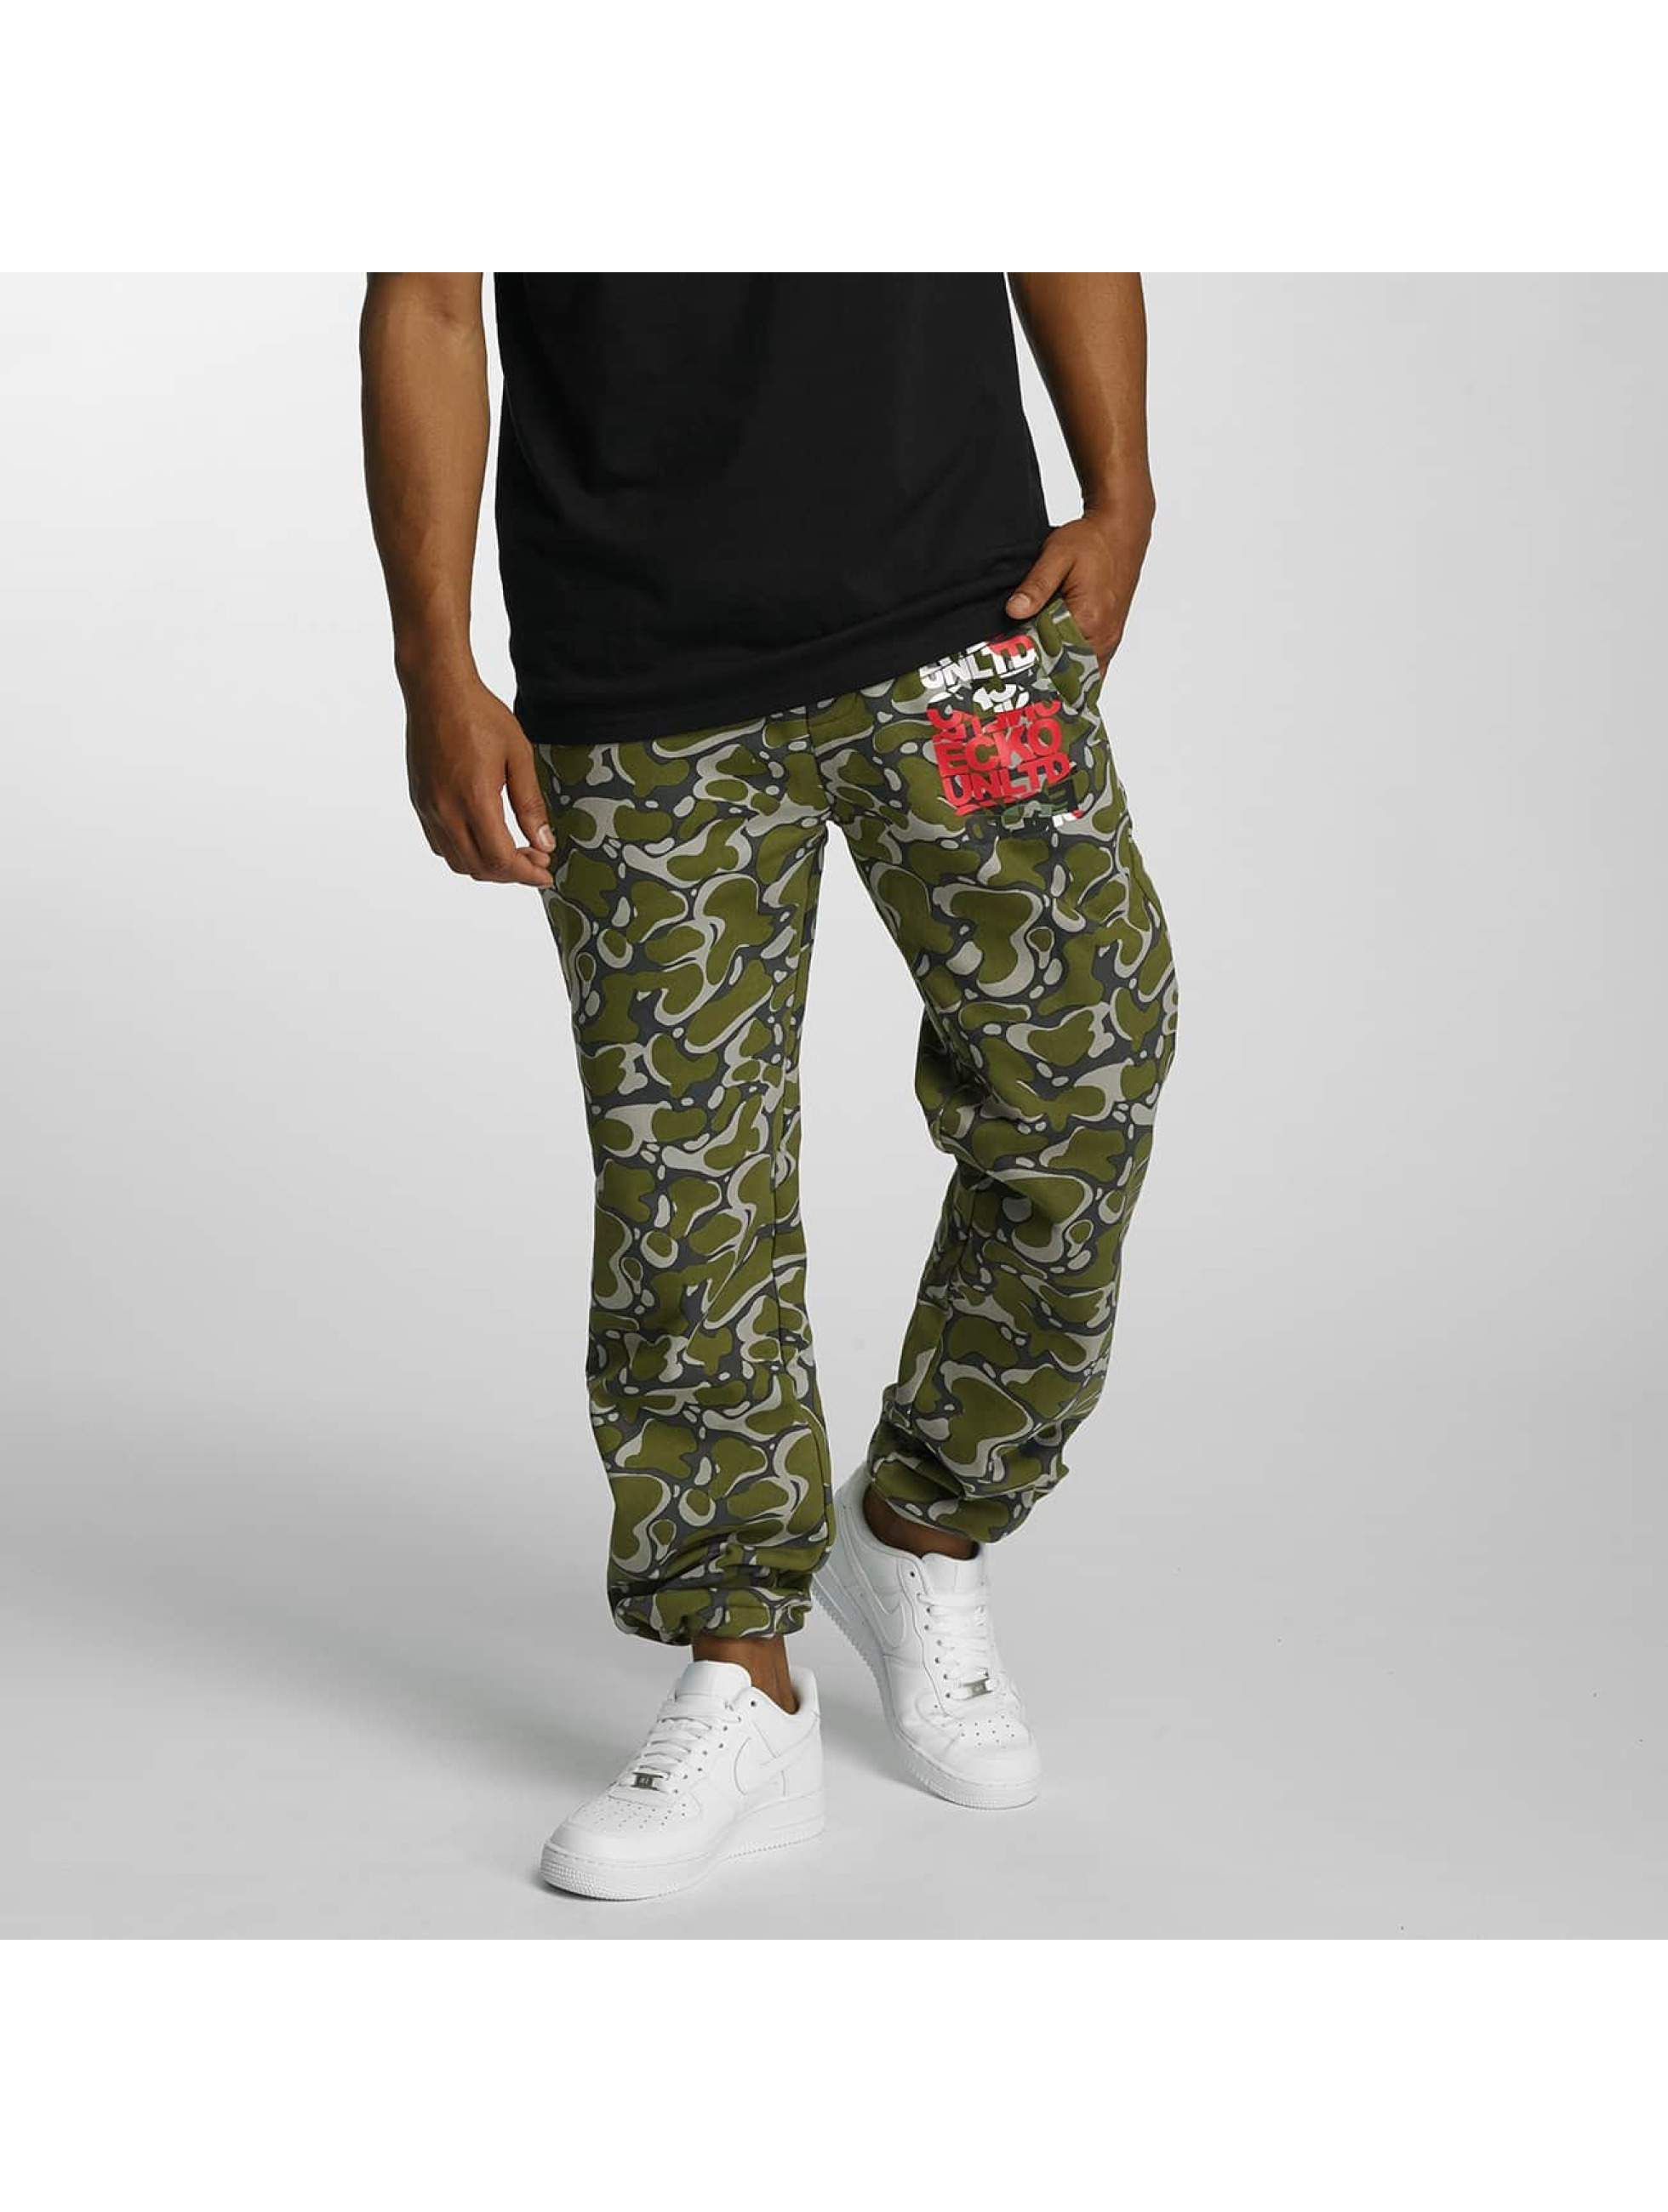 Joggingbroek Groen.Ecko Unltd Broek Joggingbroek Joe In Groen 330456